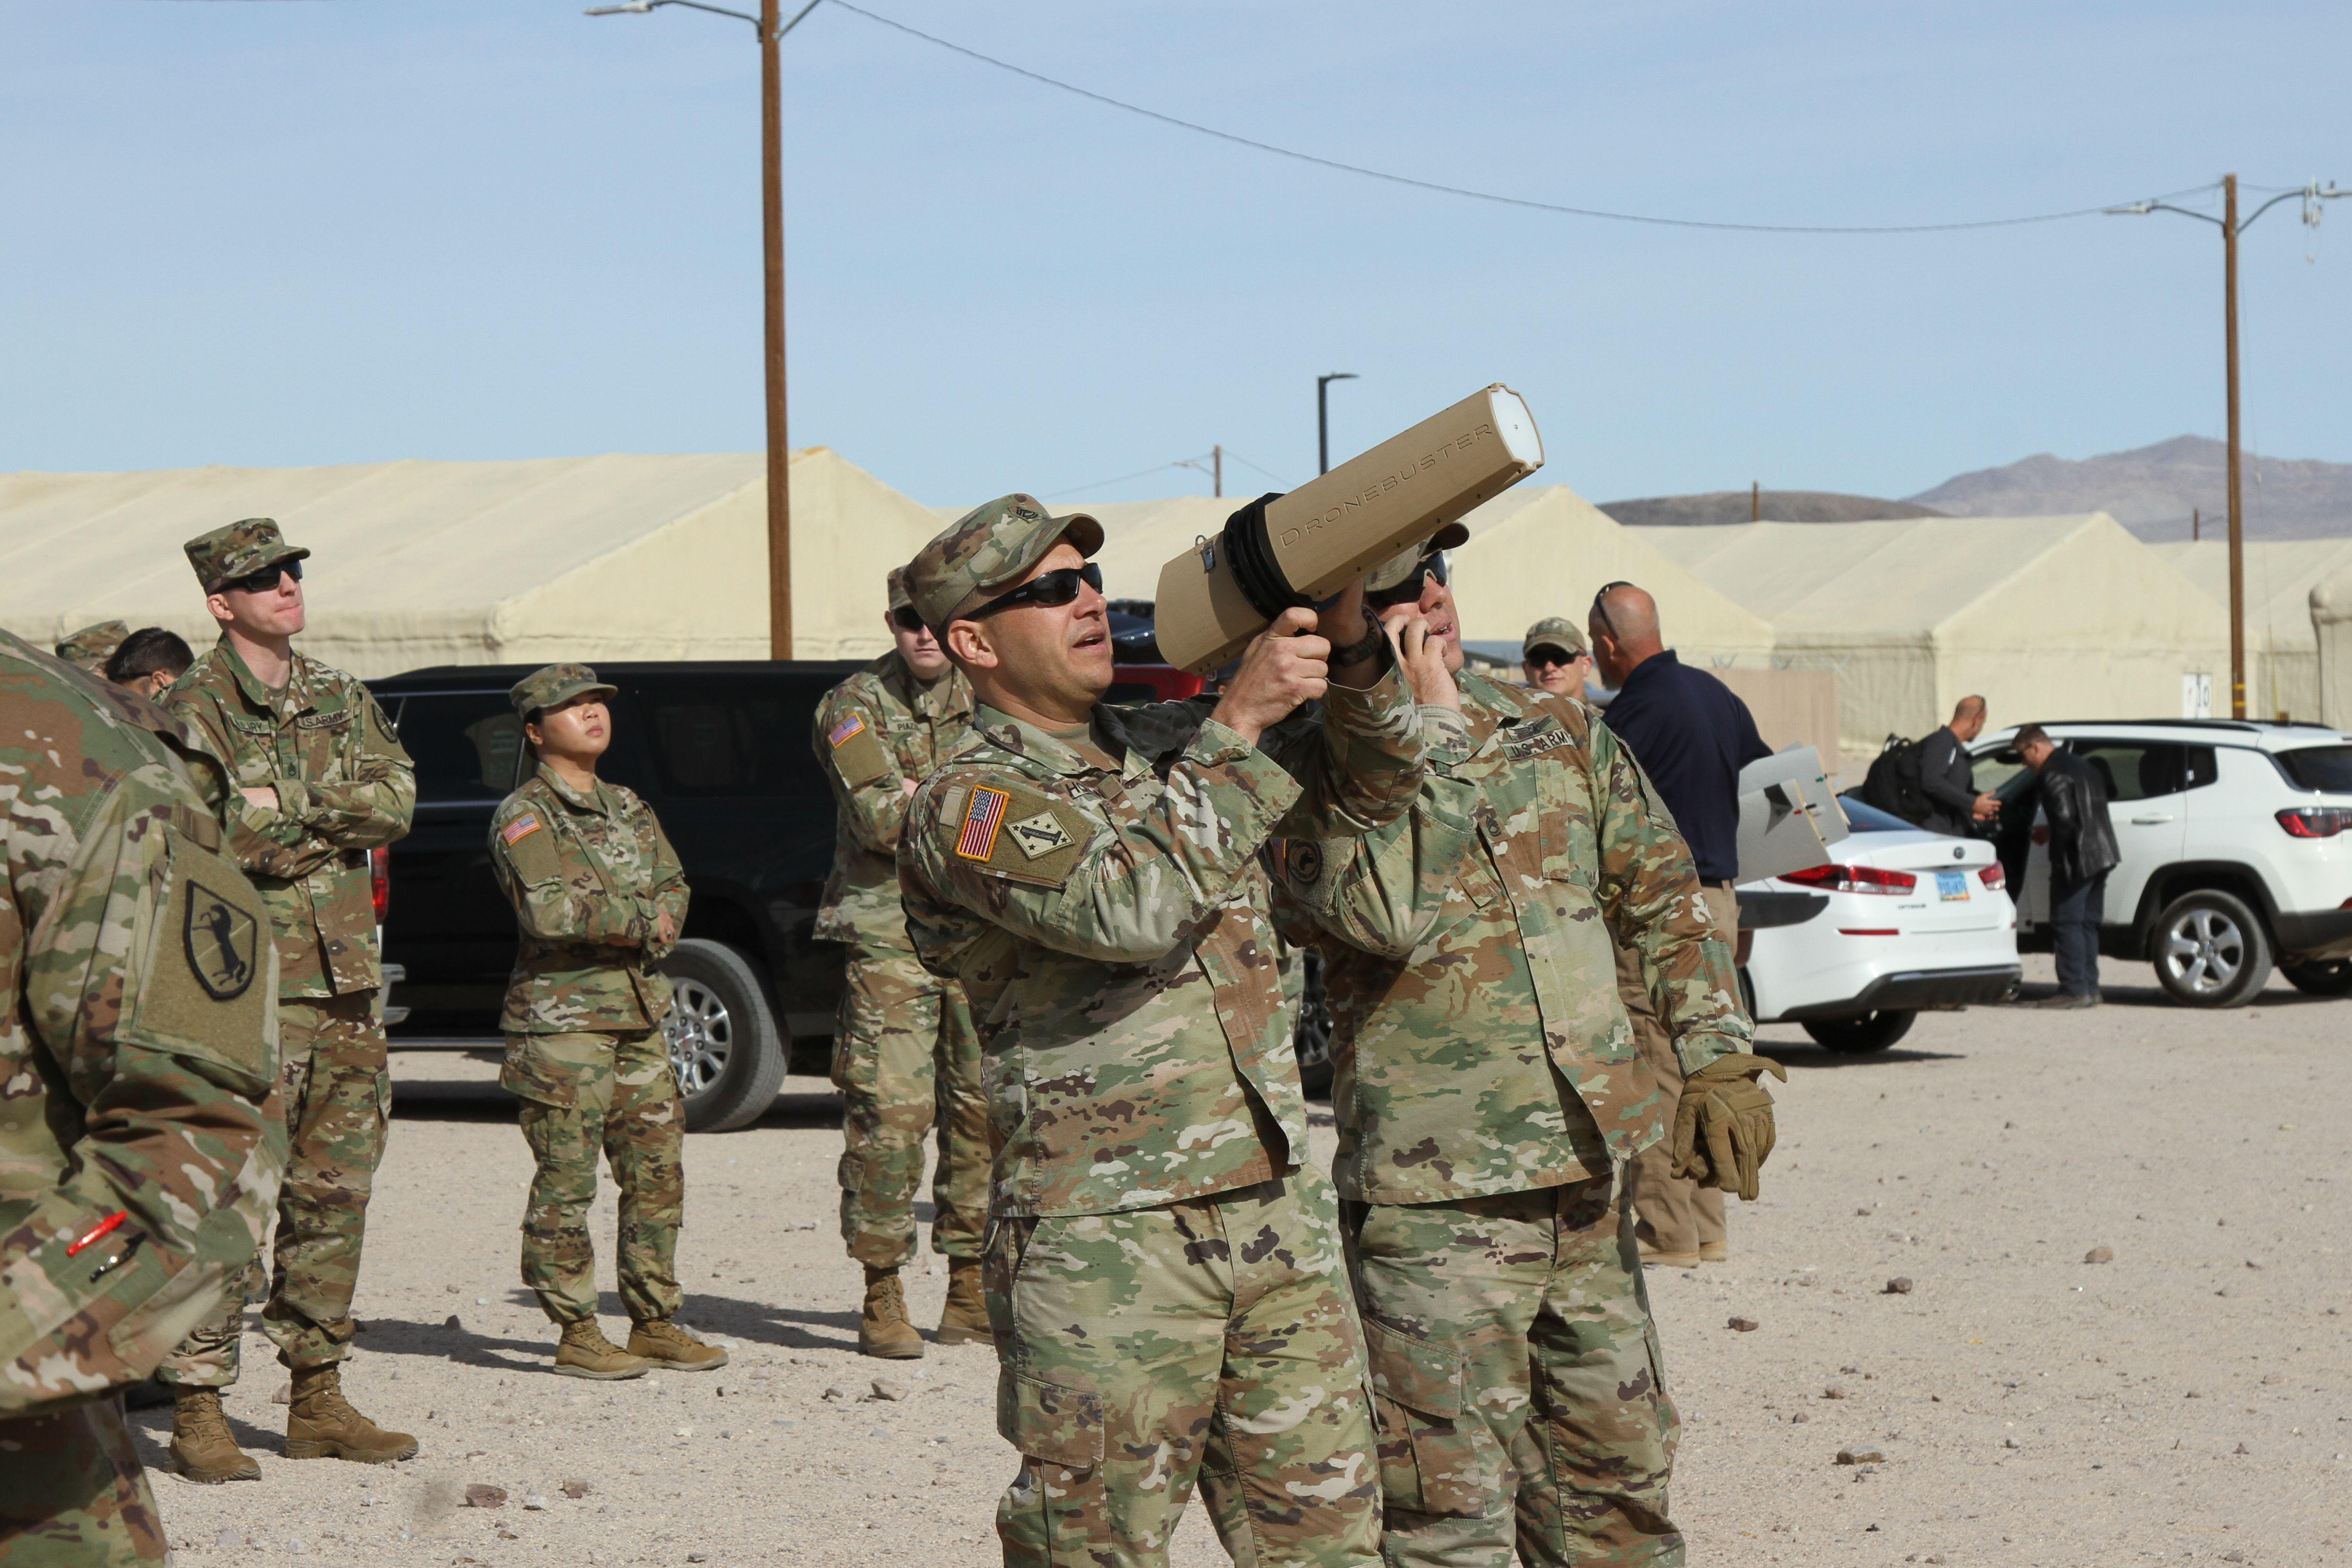 US Army discontinues Rapid Equipping Force